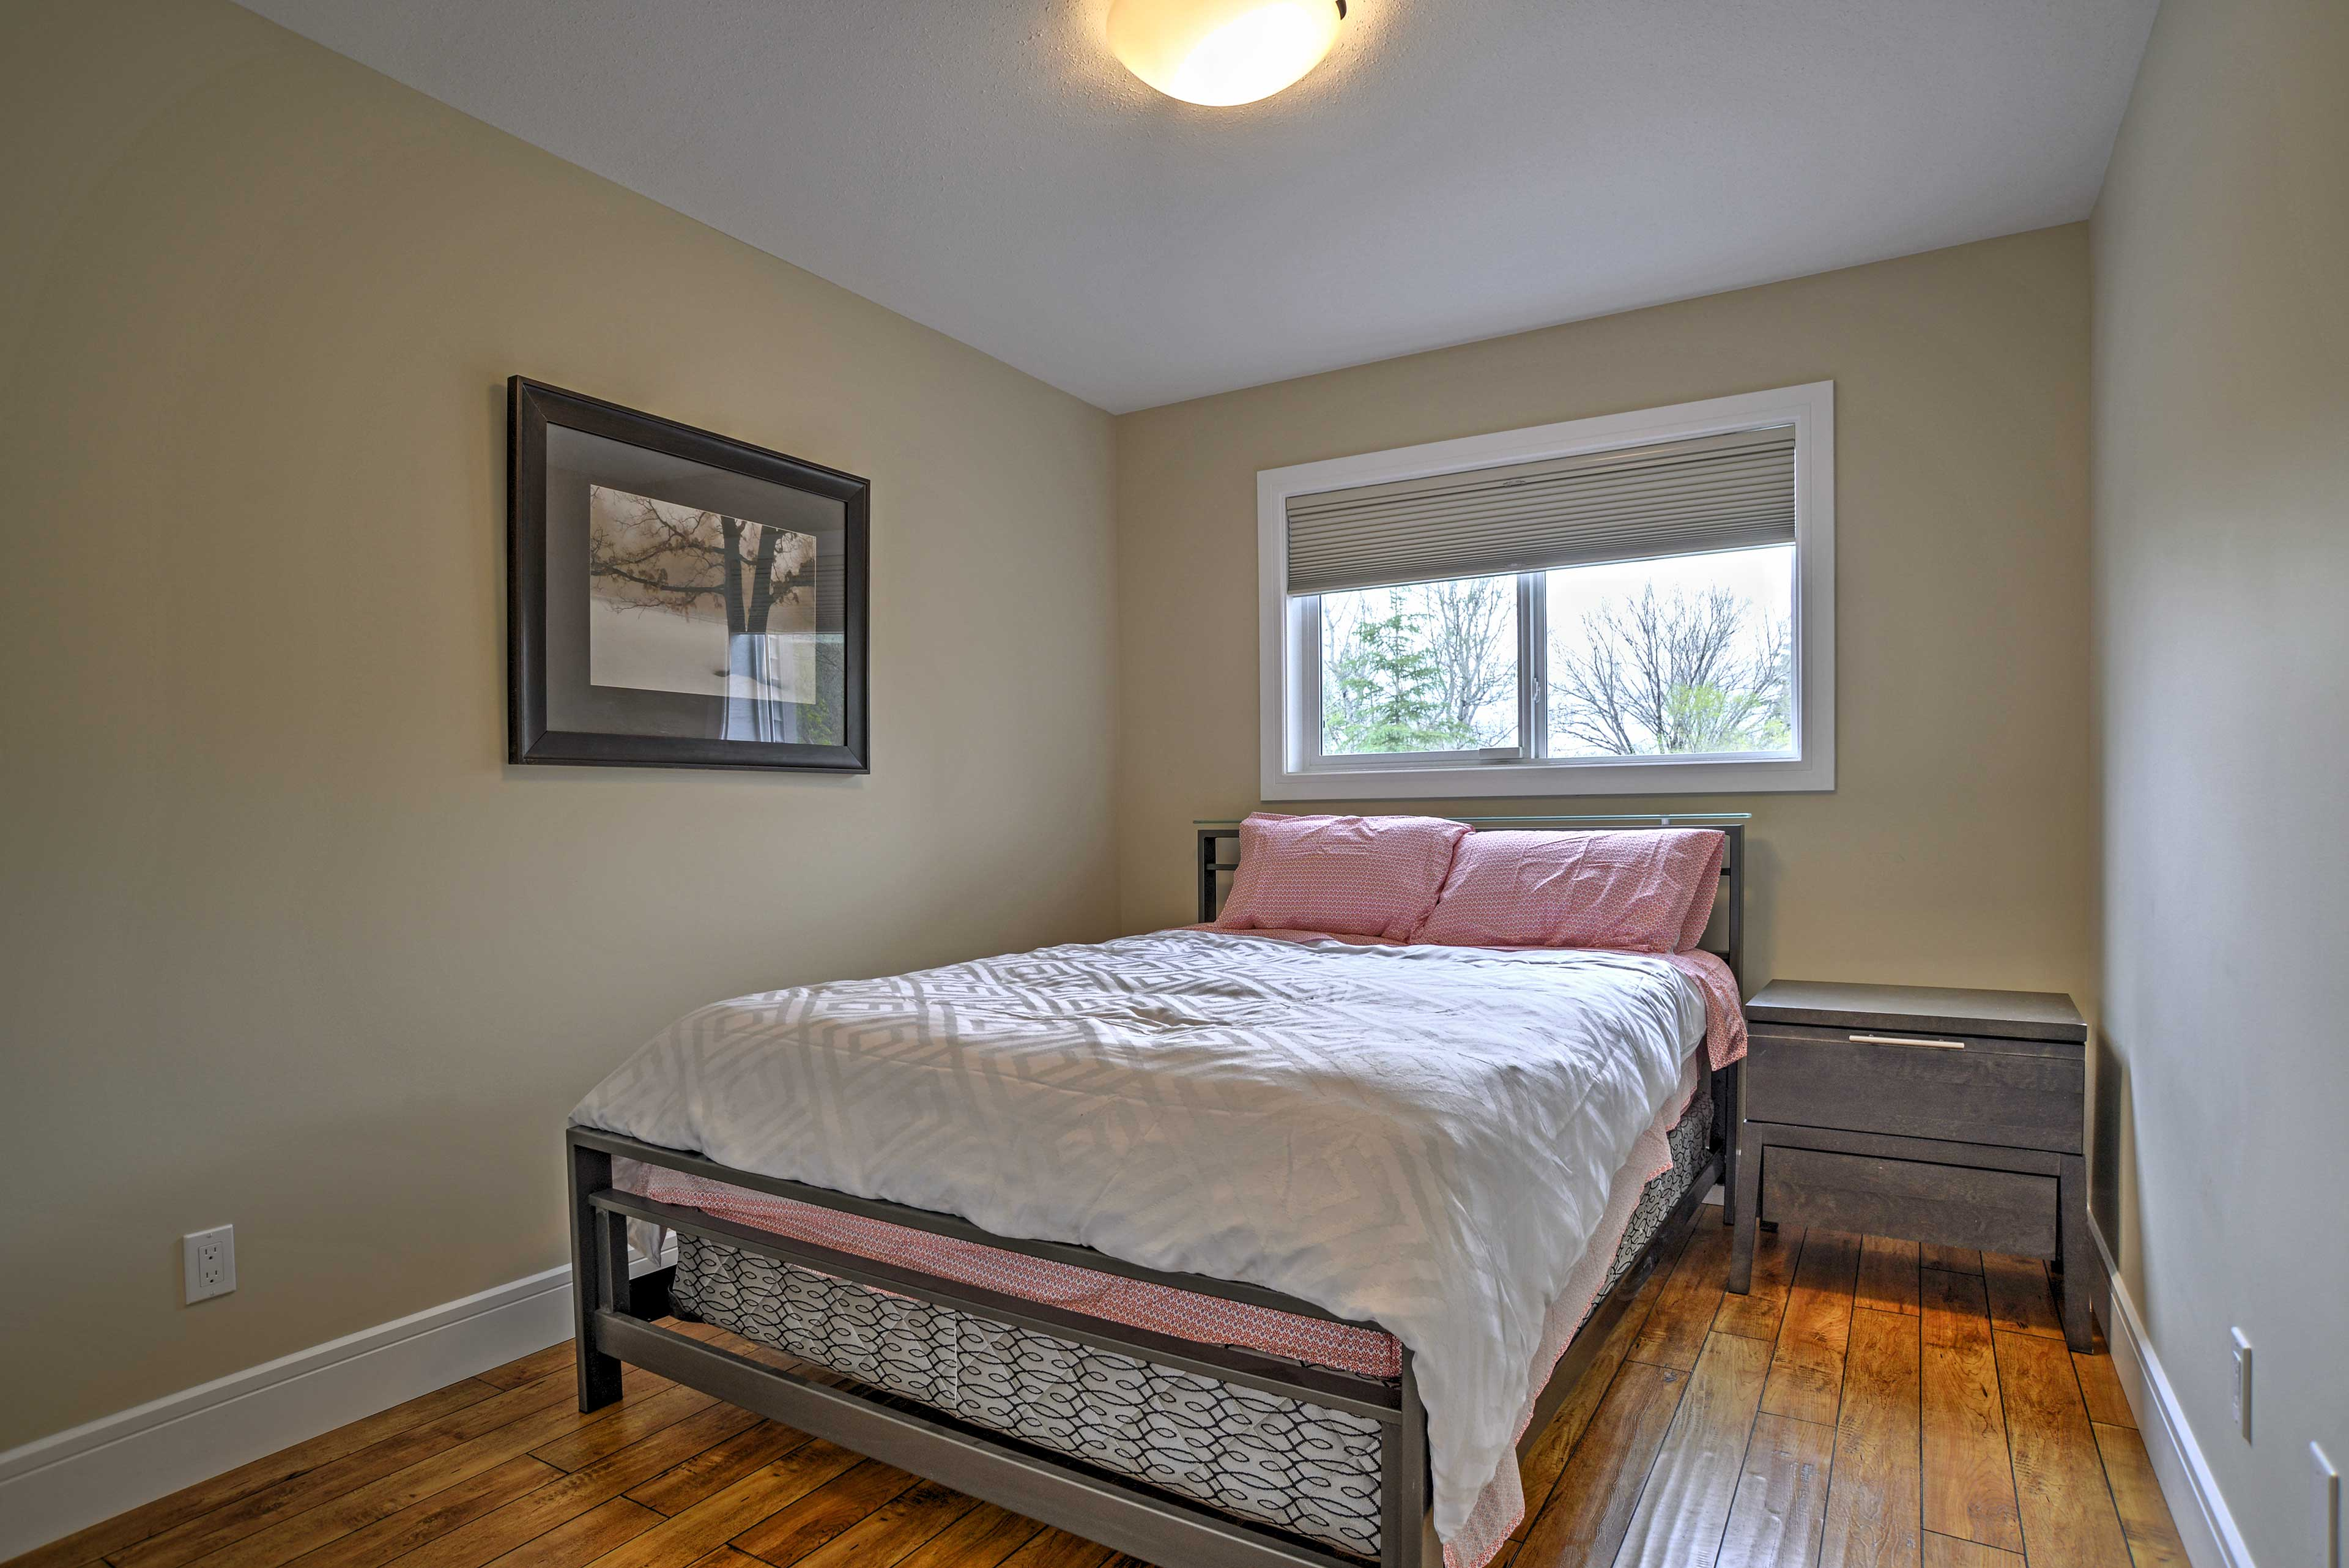 The property has plenty of bed space.